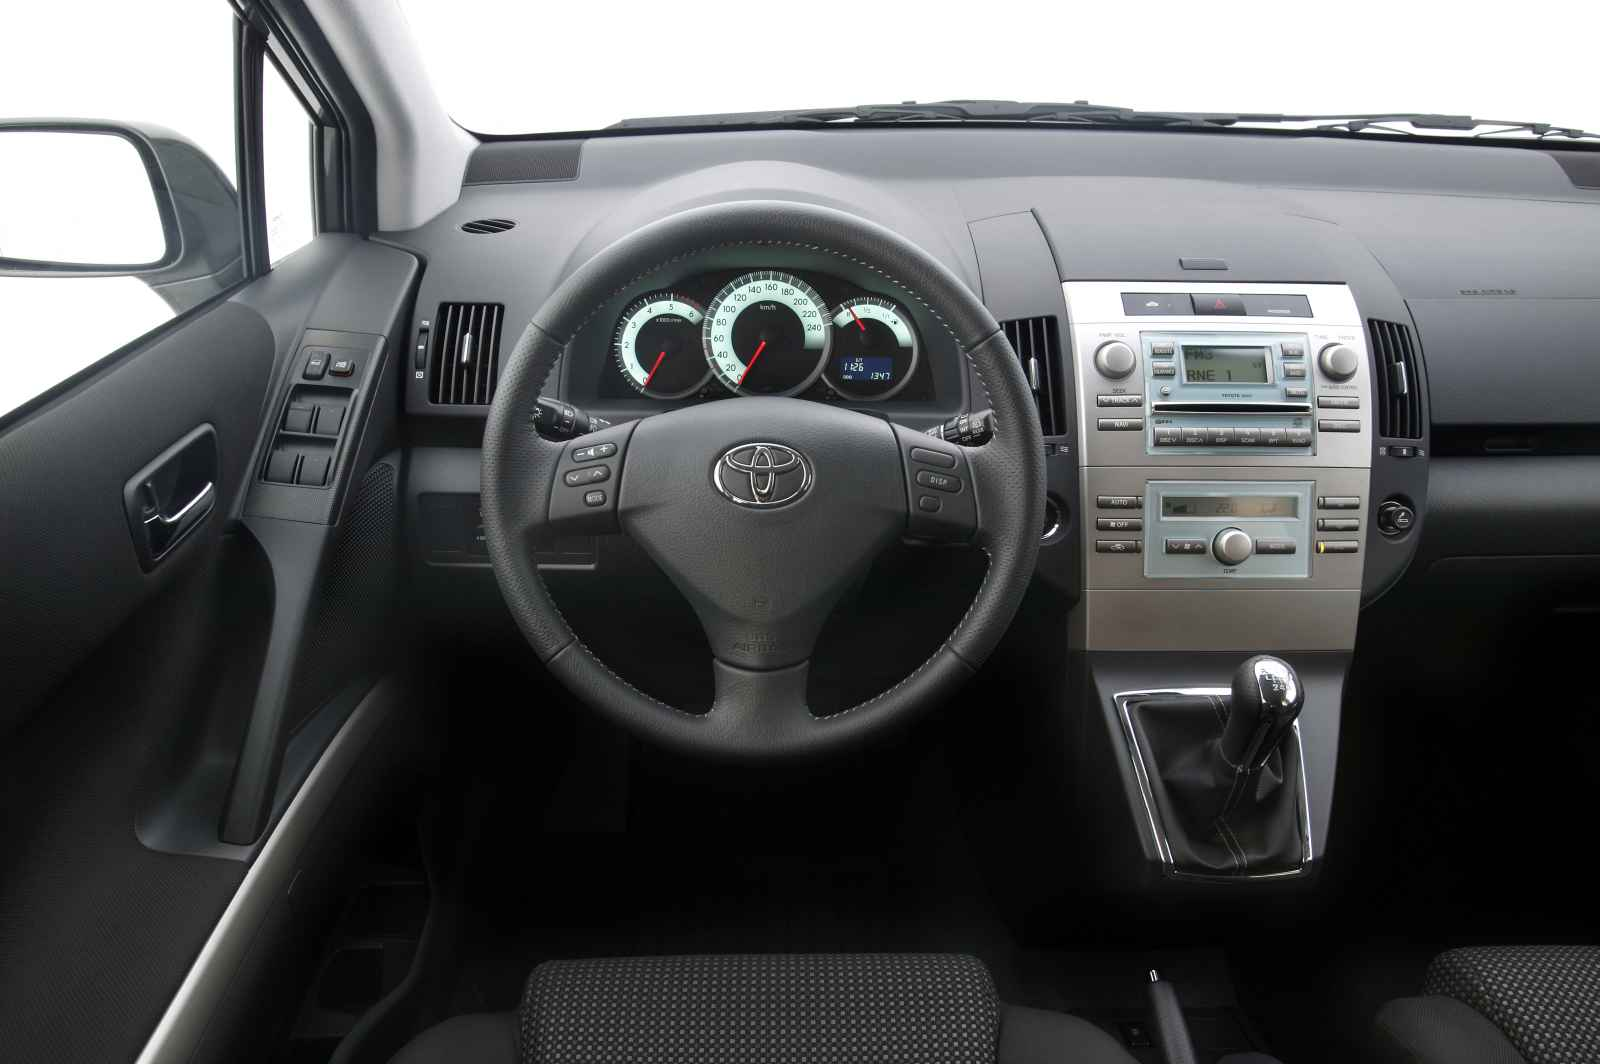 2005 toyota corolla verso pictures information and. Black Bedroom Furniture Sets. Home Design Ideas